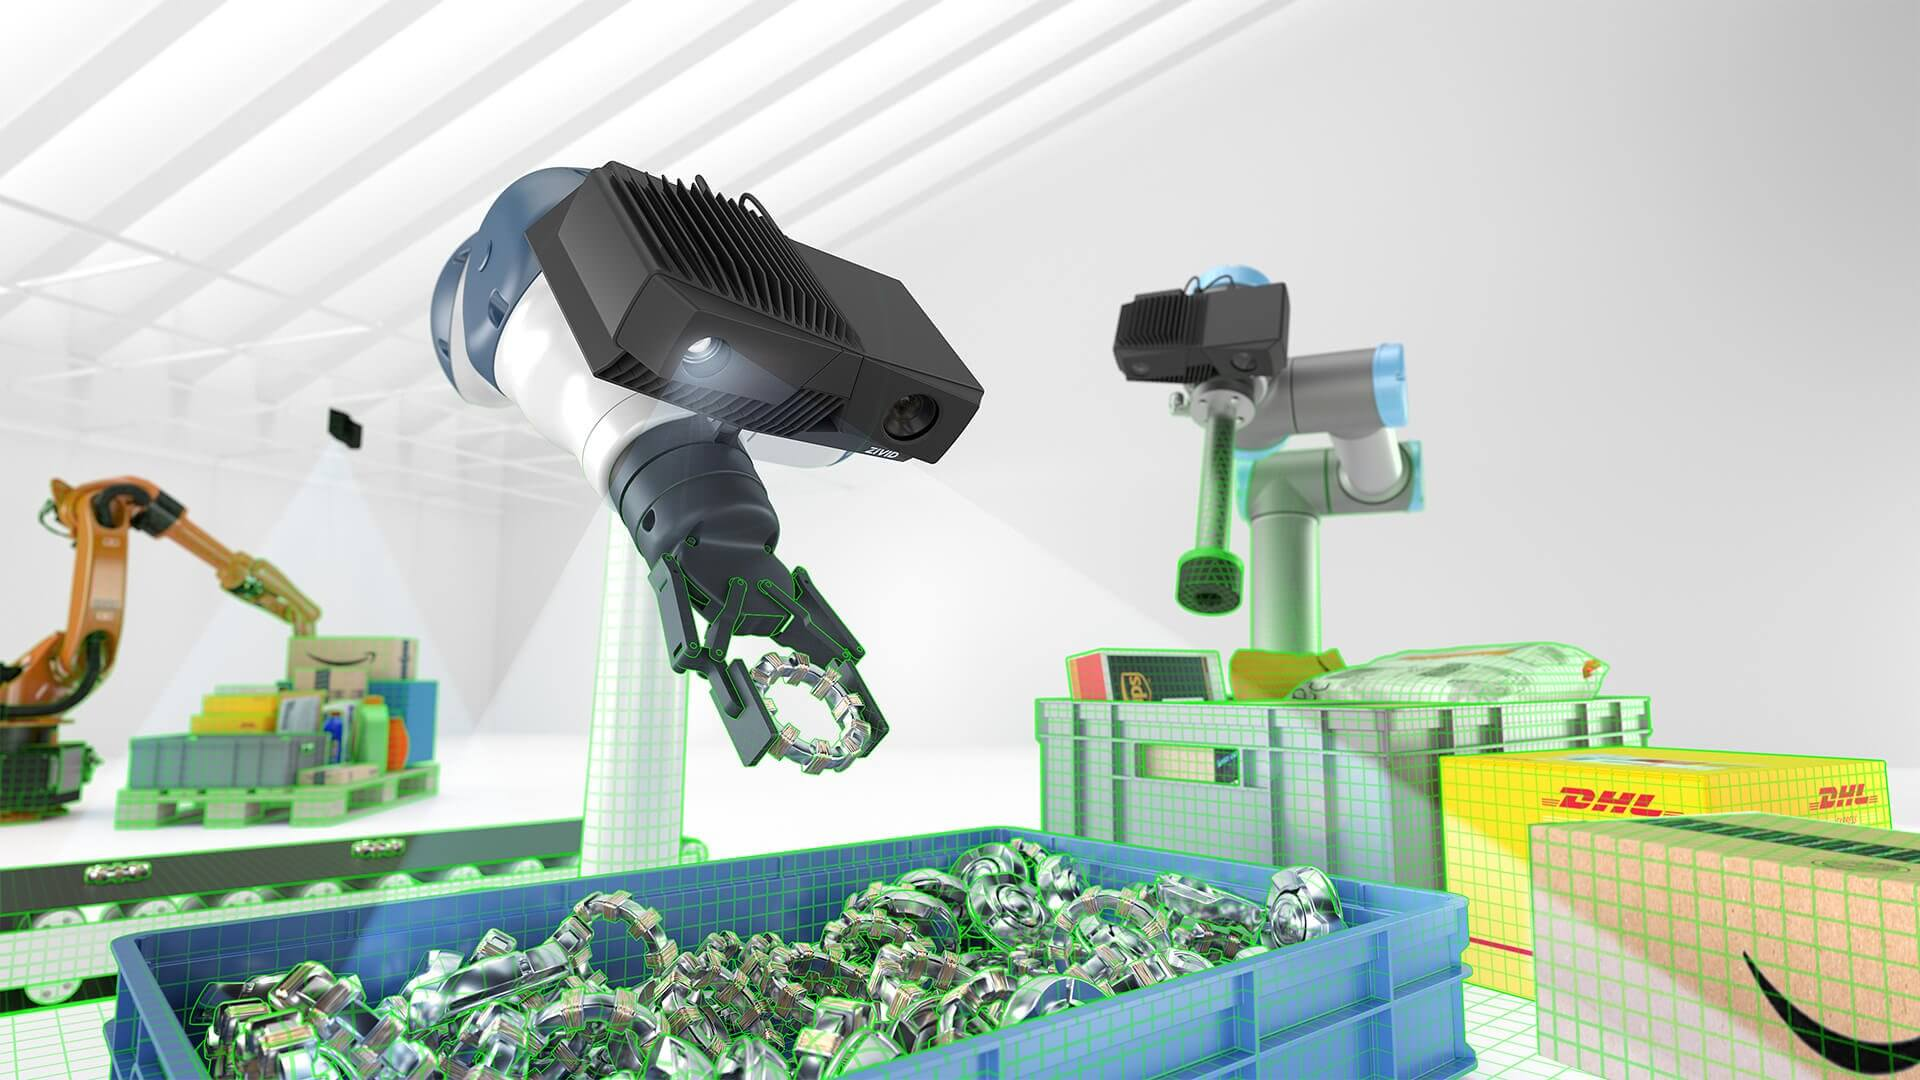 Zivid 3D cameras are used in logistics, bin picking and industrial automation